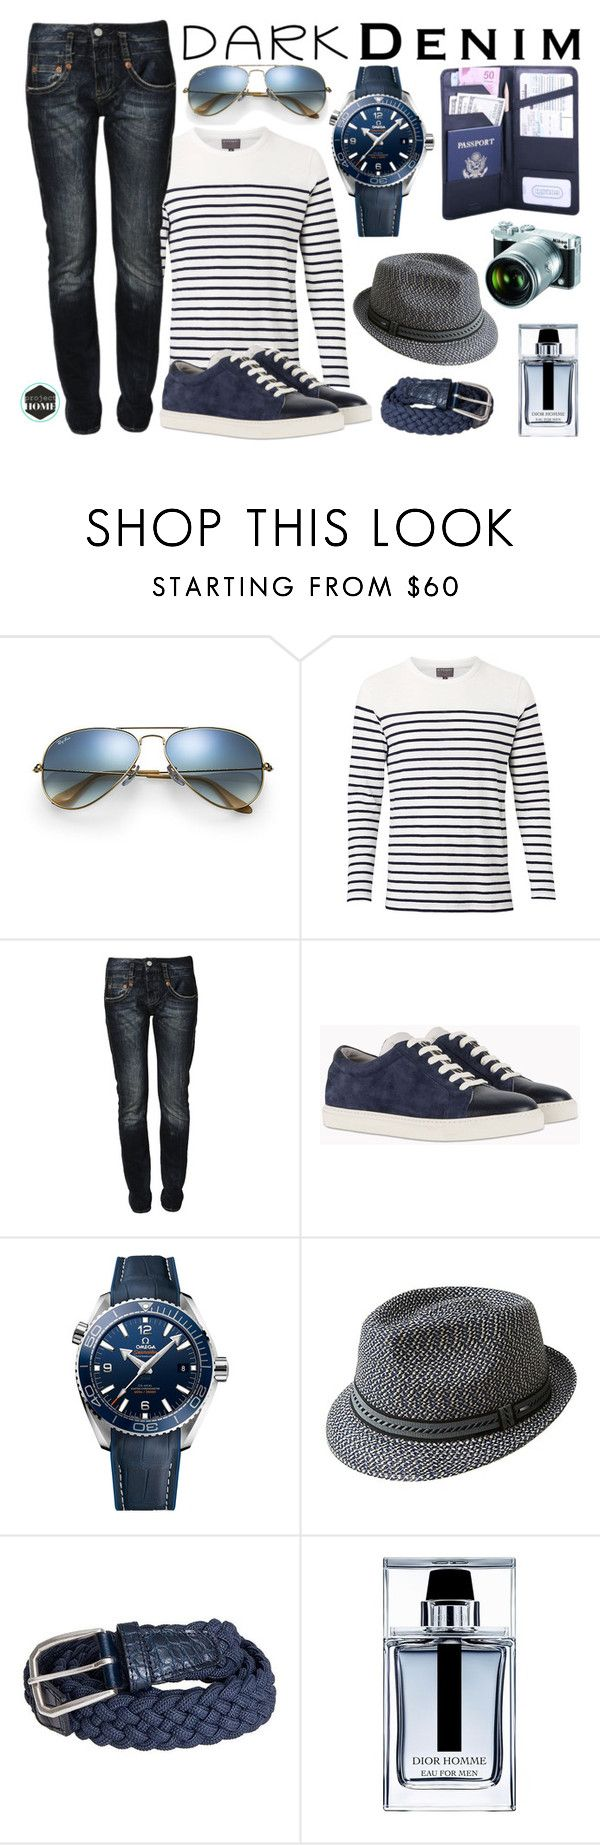 """Untitled #392"" by riell-projecthome ❤ liked on Polyvore featuring Ray-Ban, Witchery, Herrlicher, Brunello Cucinelli, OMEGA, Bailey, D'Amico, Nikon, Christian Dior and Leatherbay"